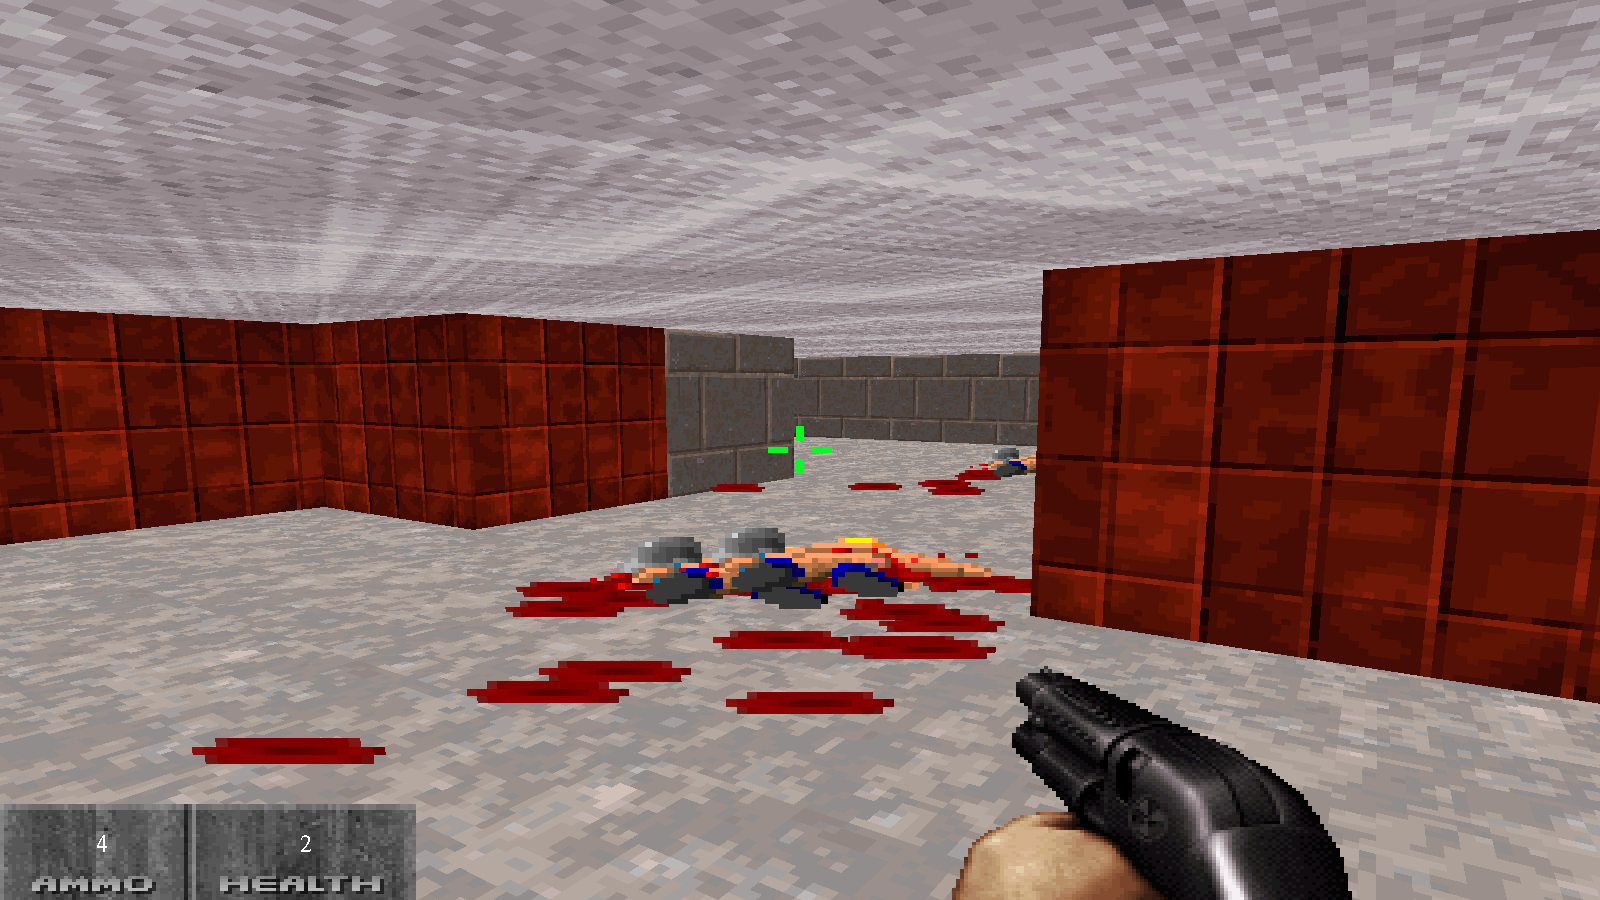 Doom Remake. Cpp, OpenGL